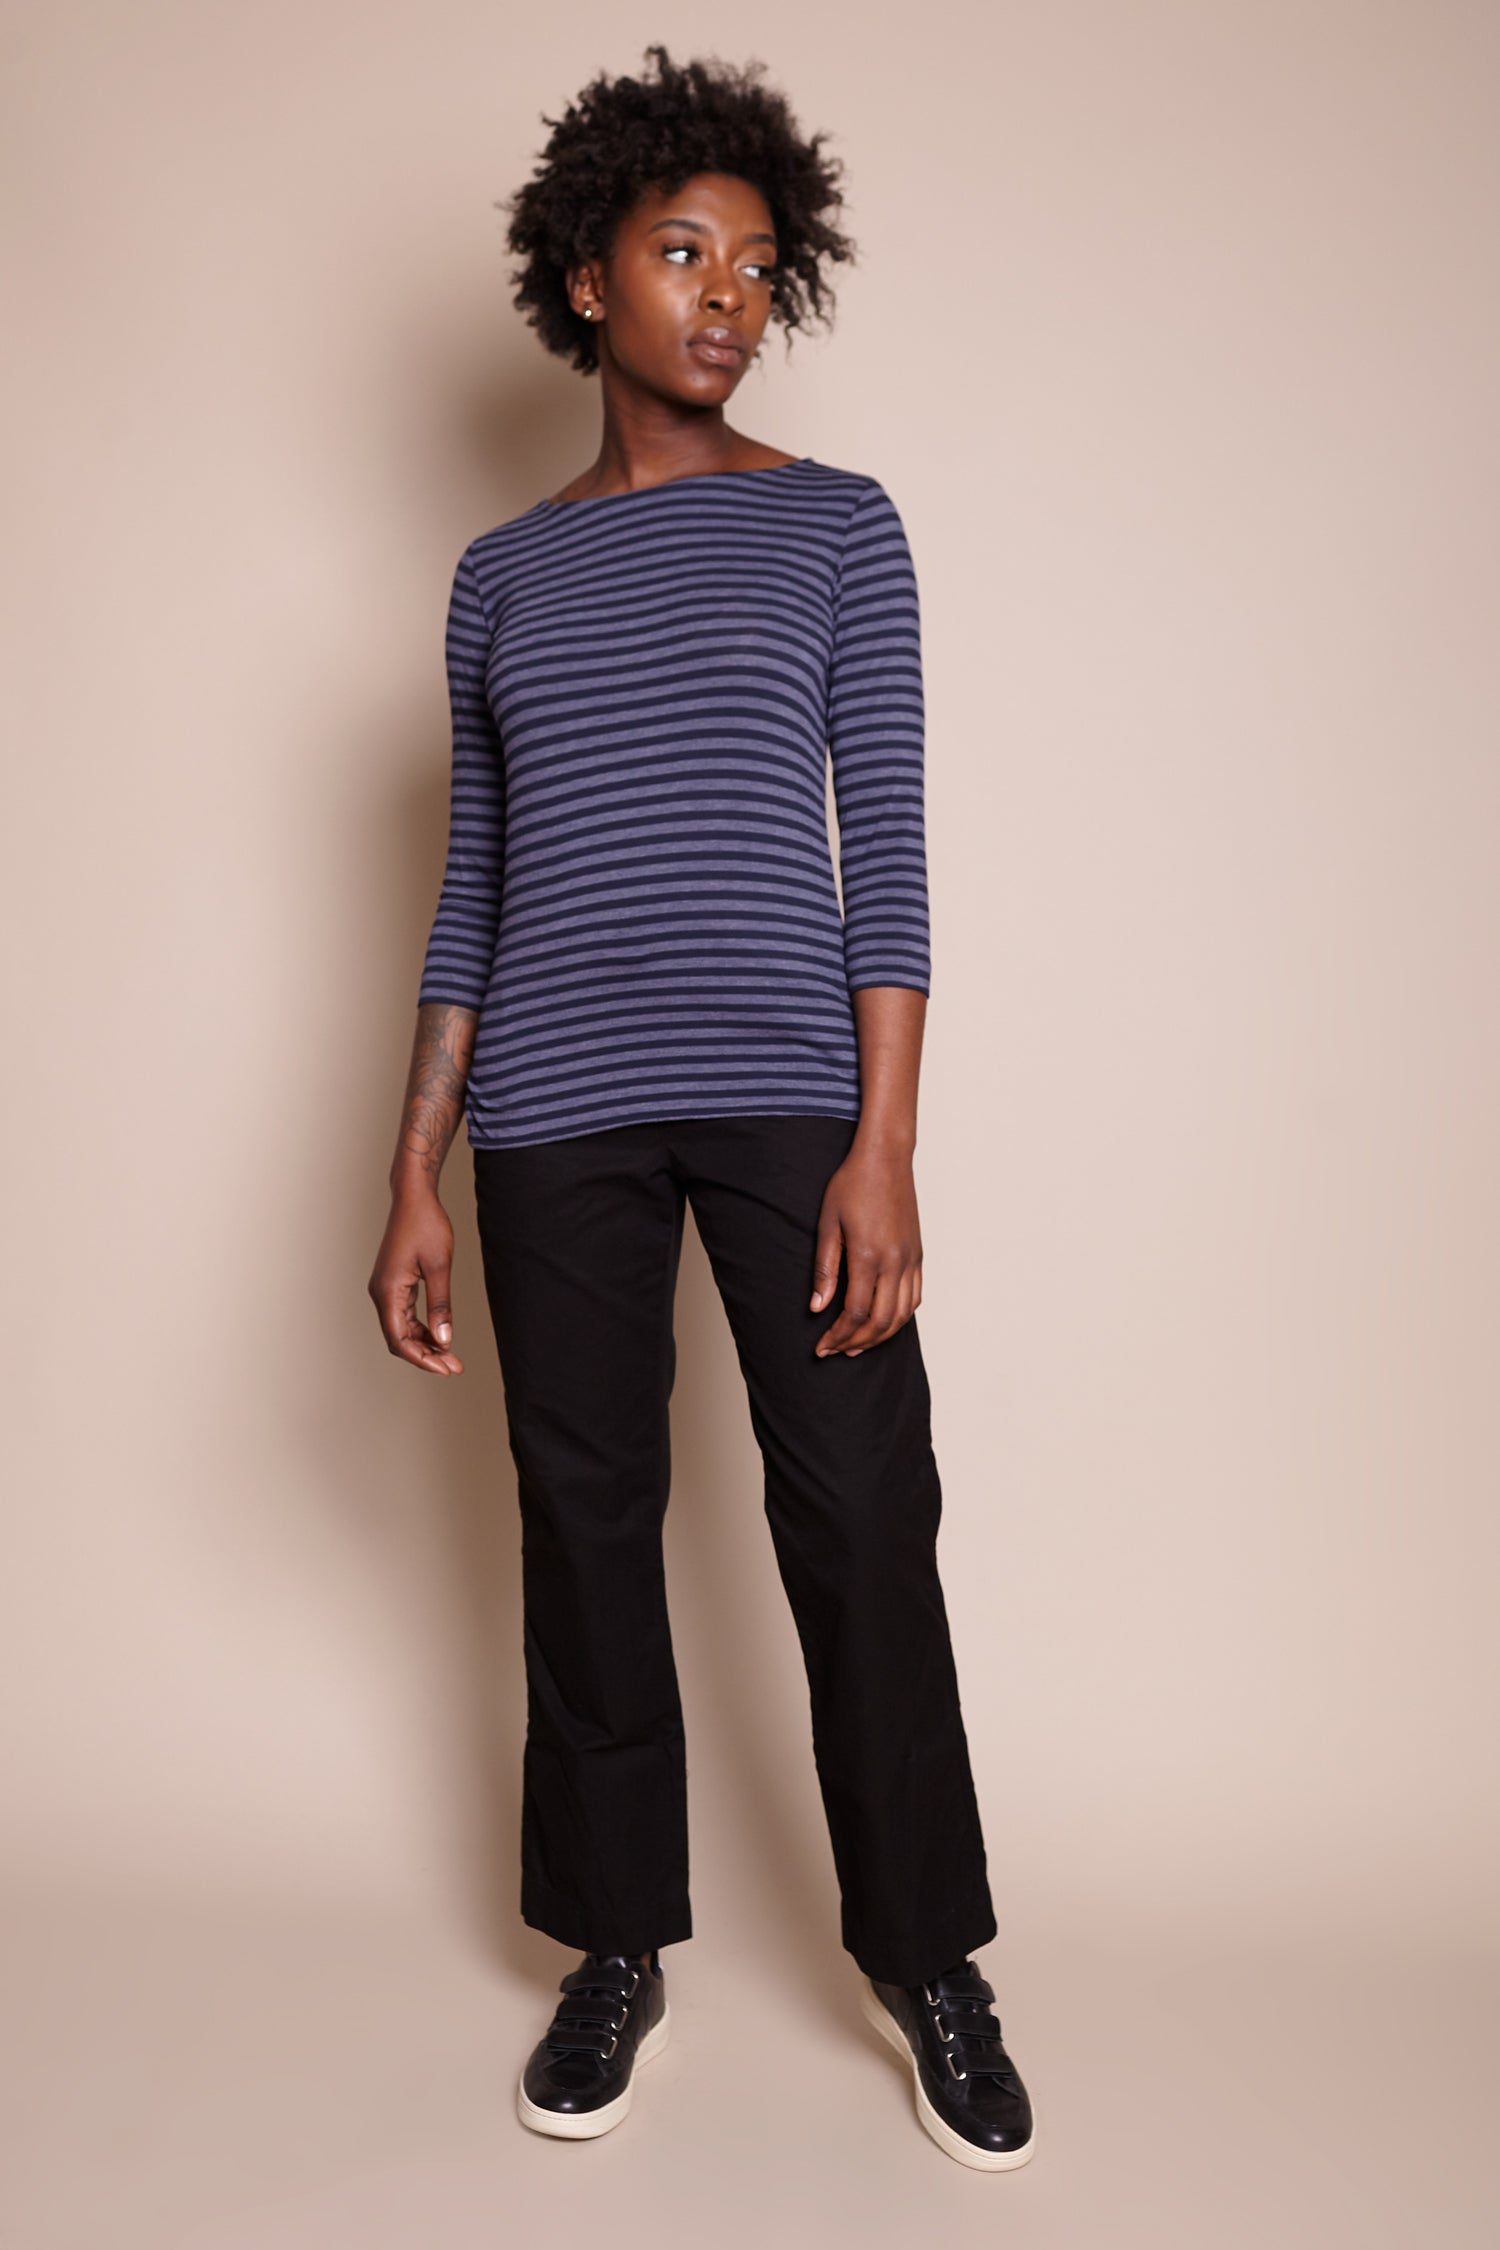 Majestic Boatneck Top in Denim Chine Marine - Vert & Vogue